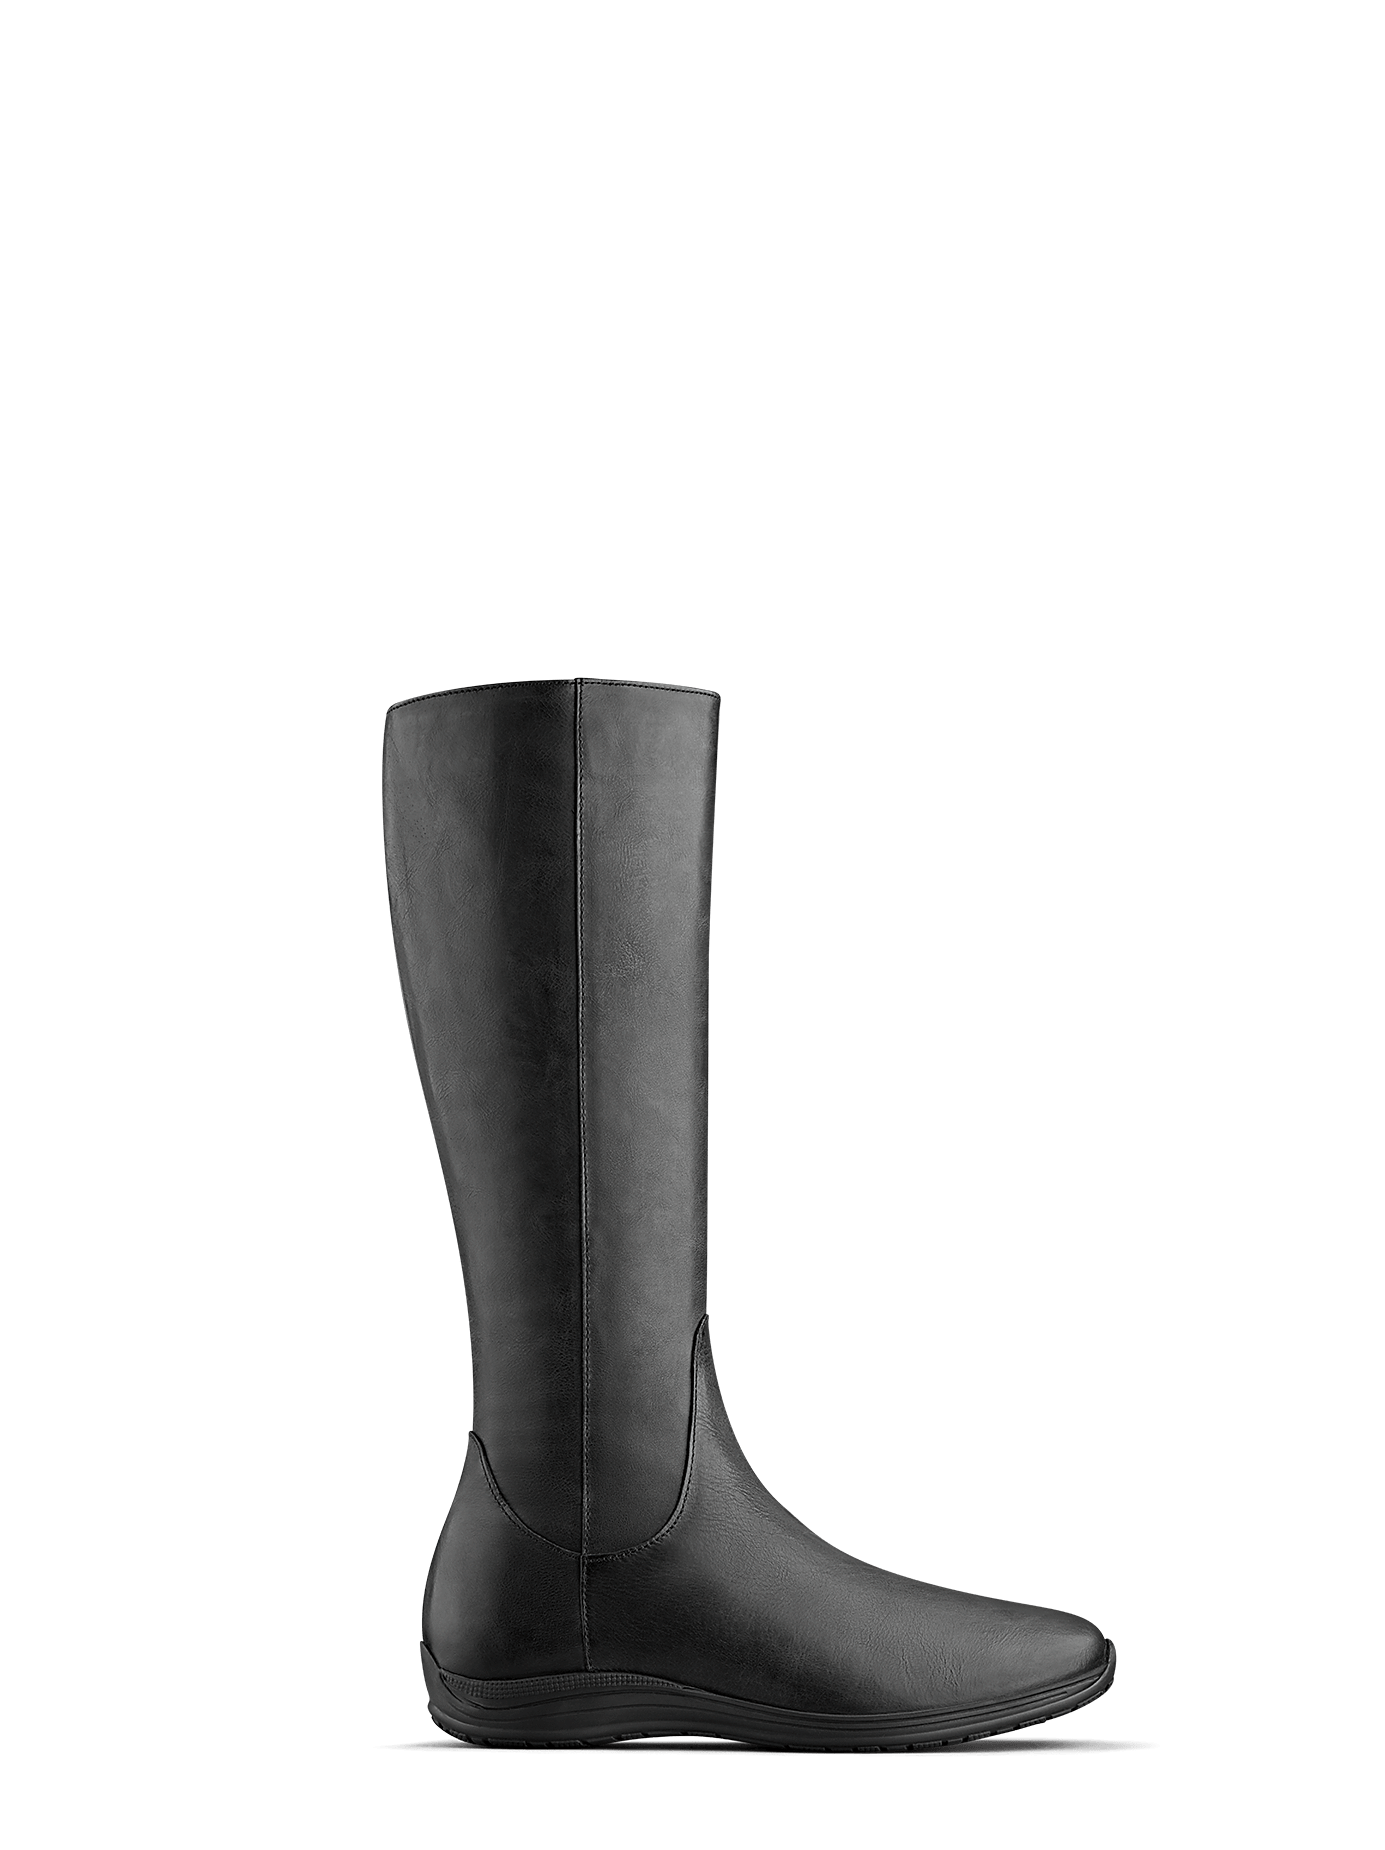 Shop Low-Heeled Boots